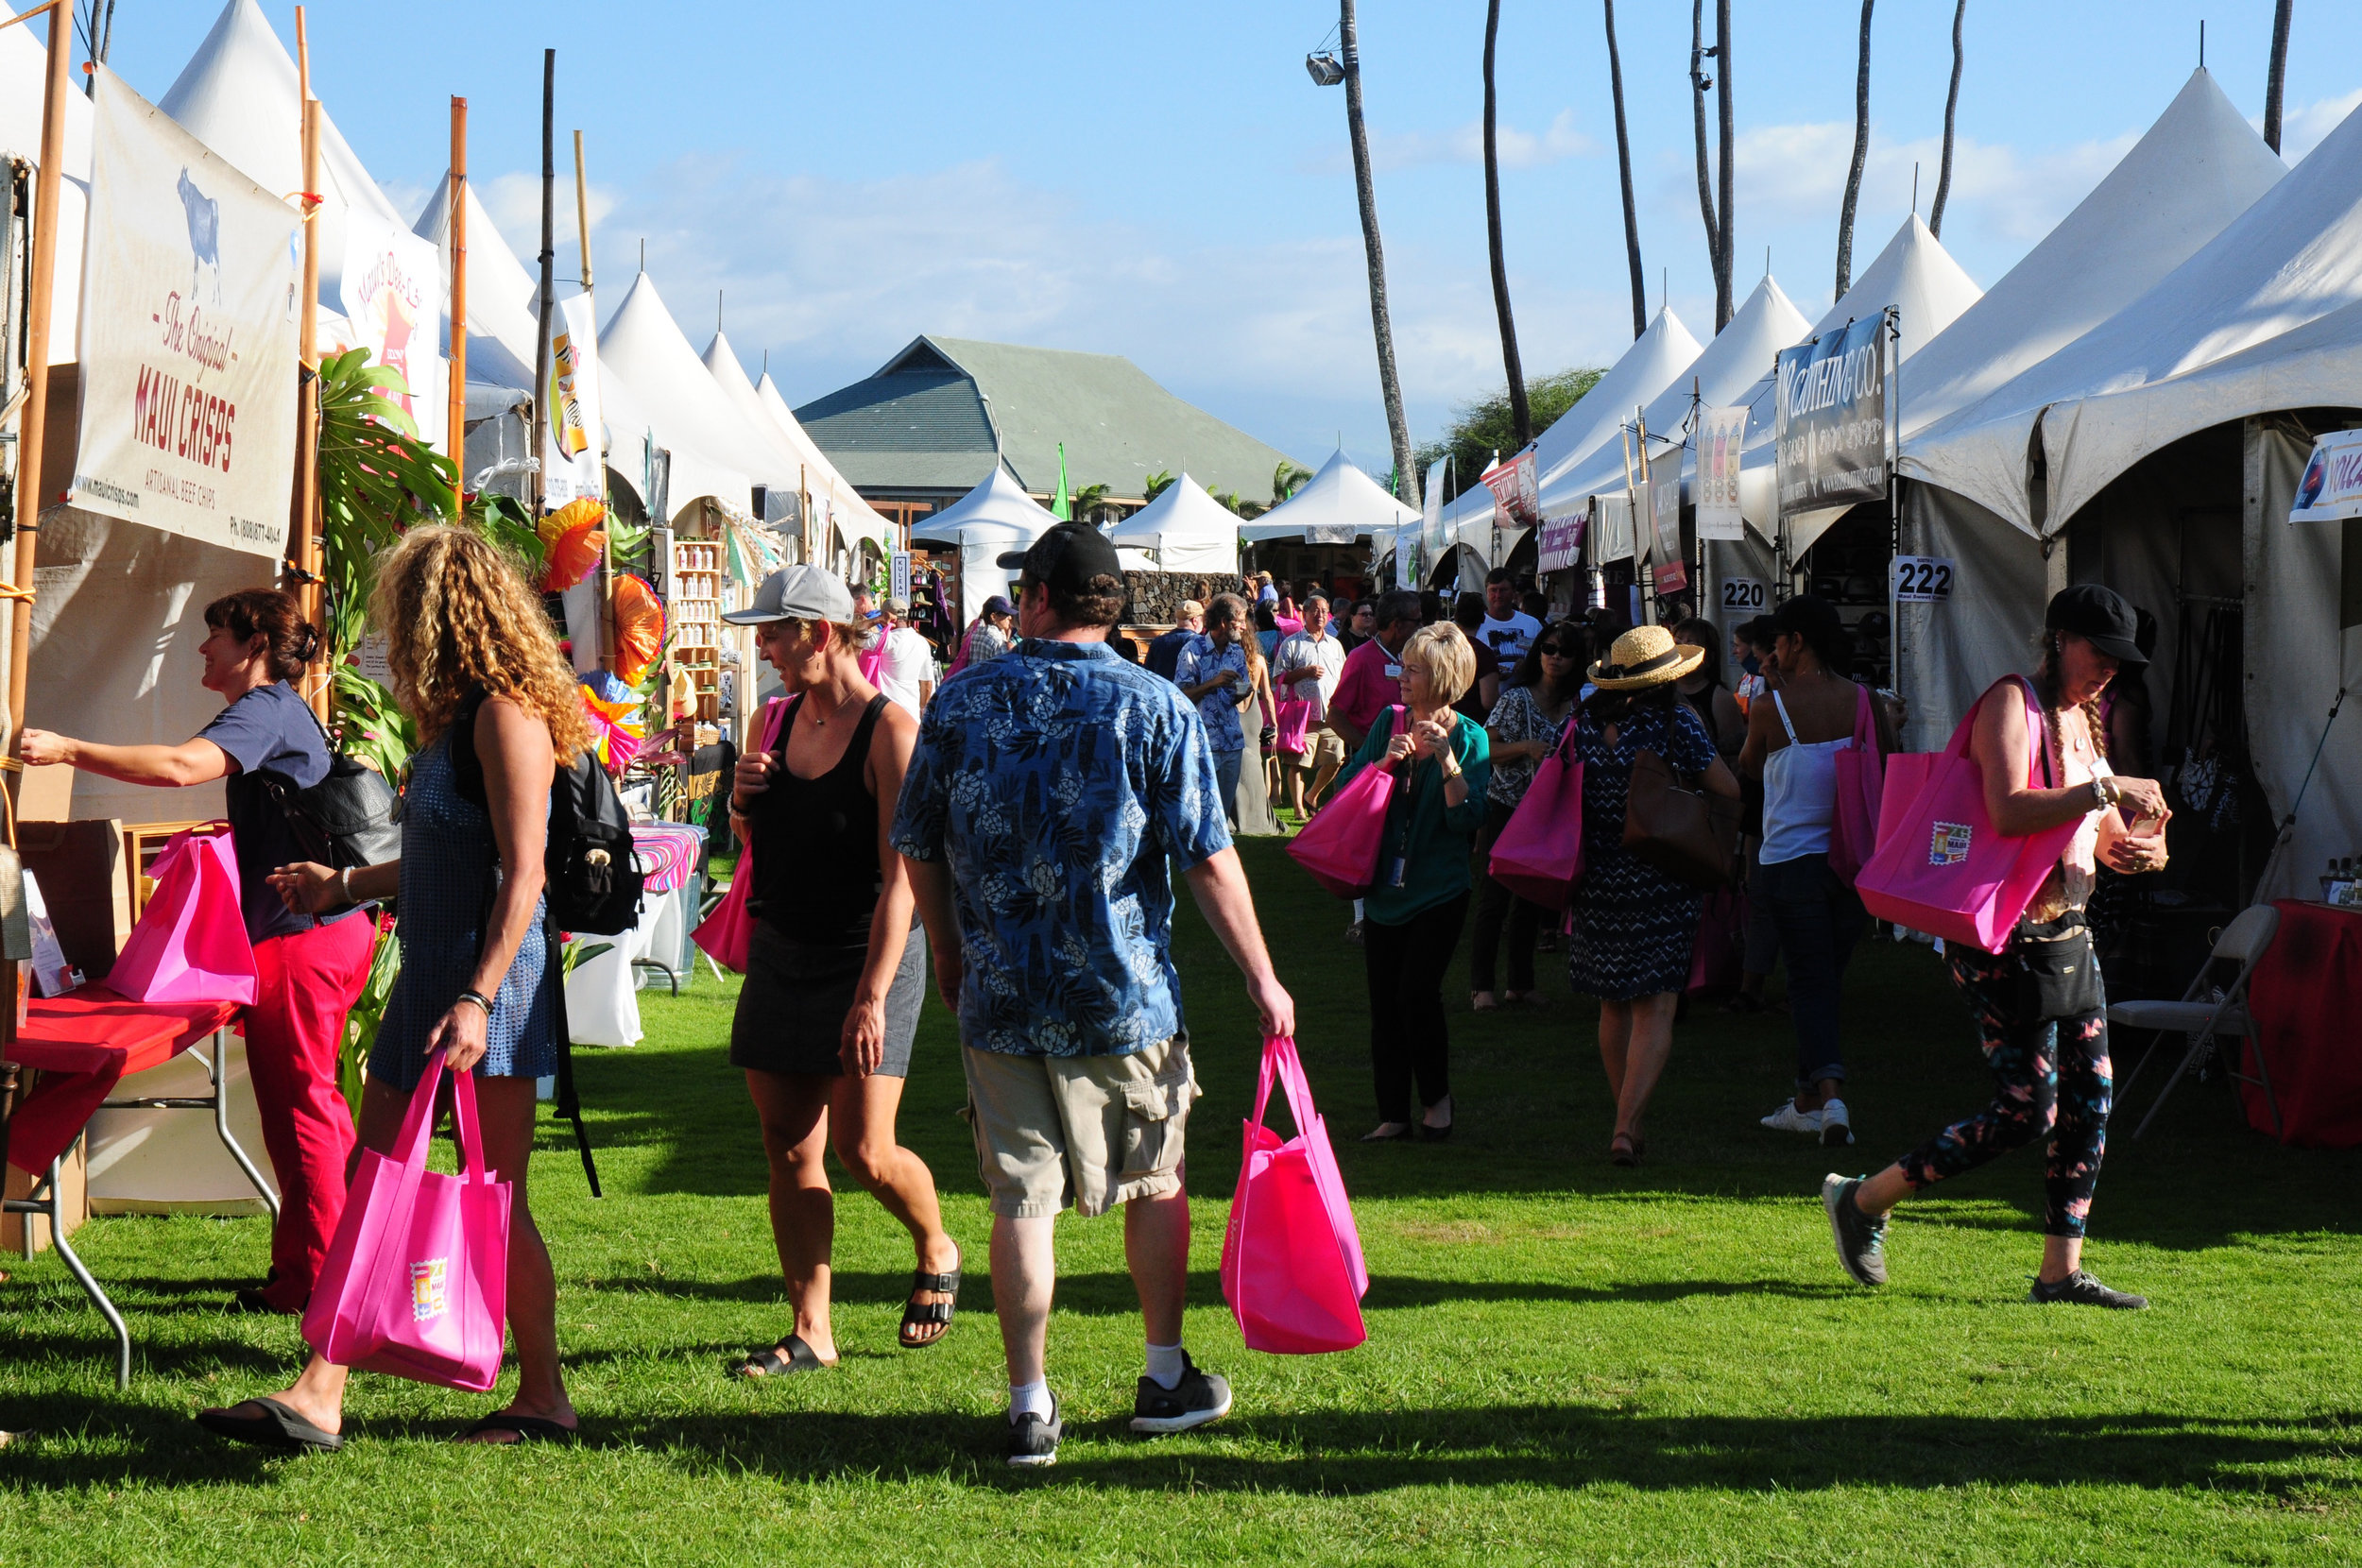 In 2017, the Made in Maui County Festival drew more than 10,000 residents and visitors for two days of shopping at the Maui Arts & Cultural Center.